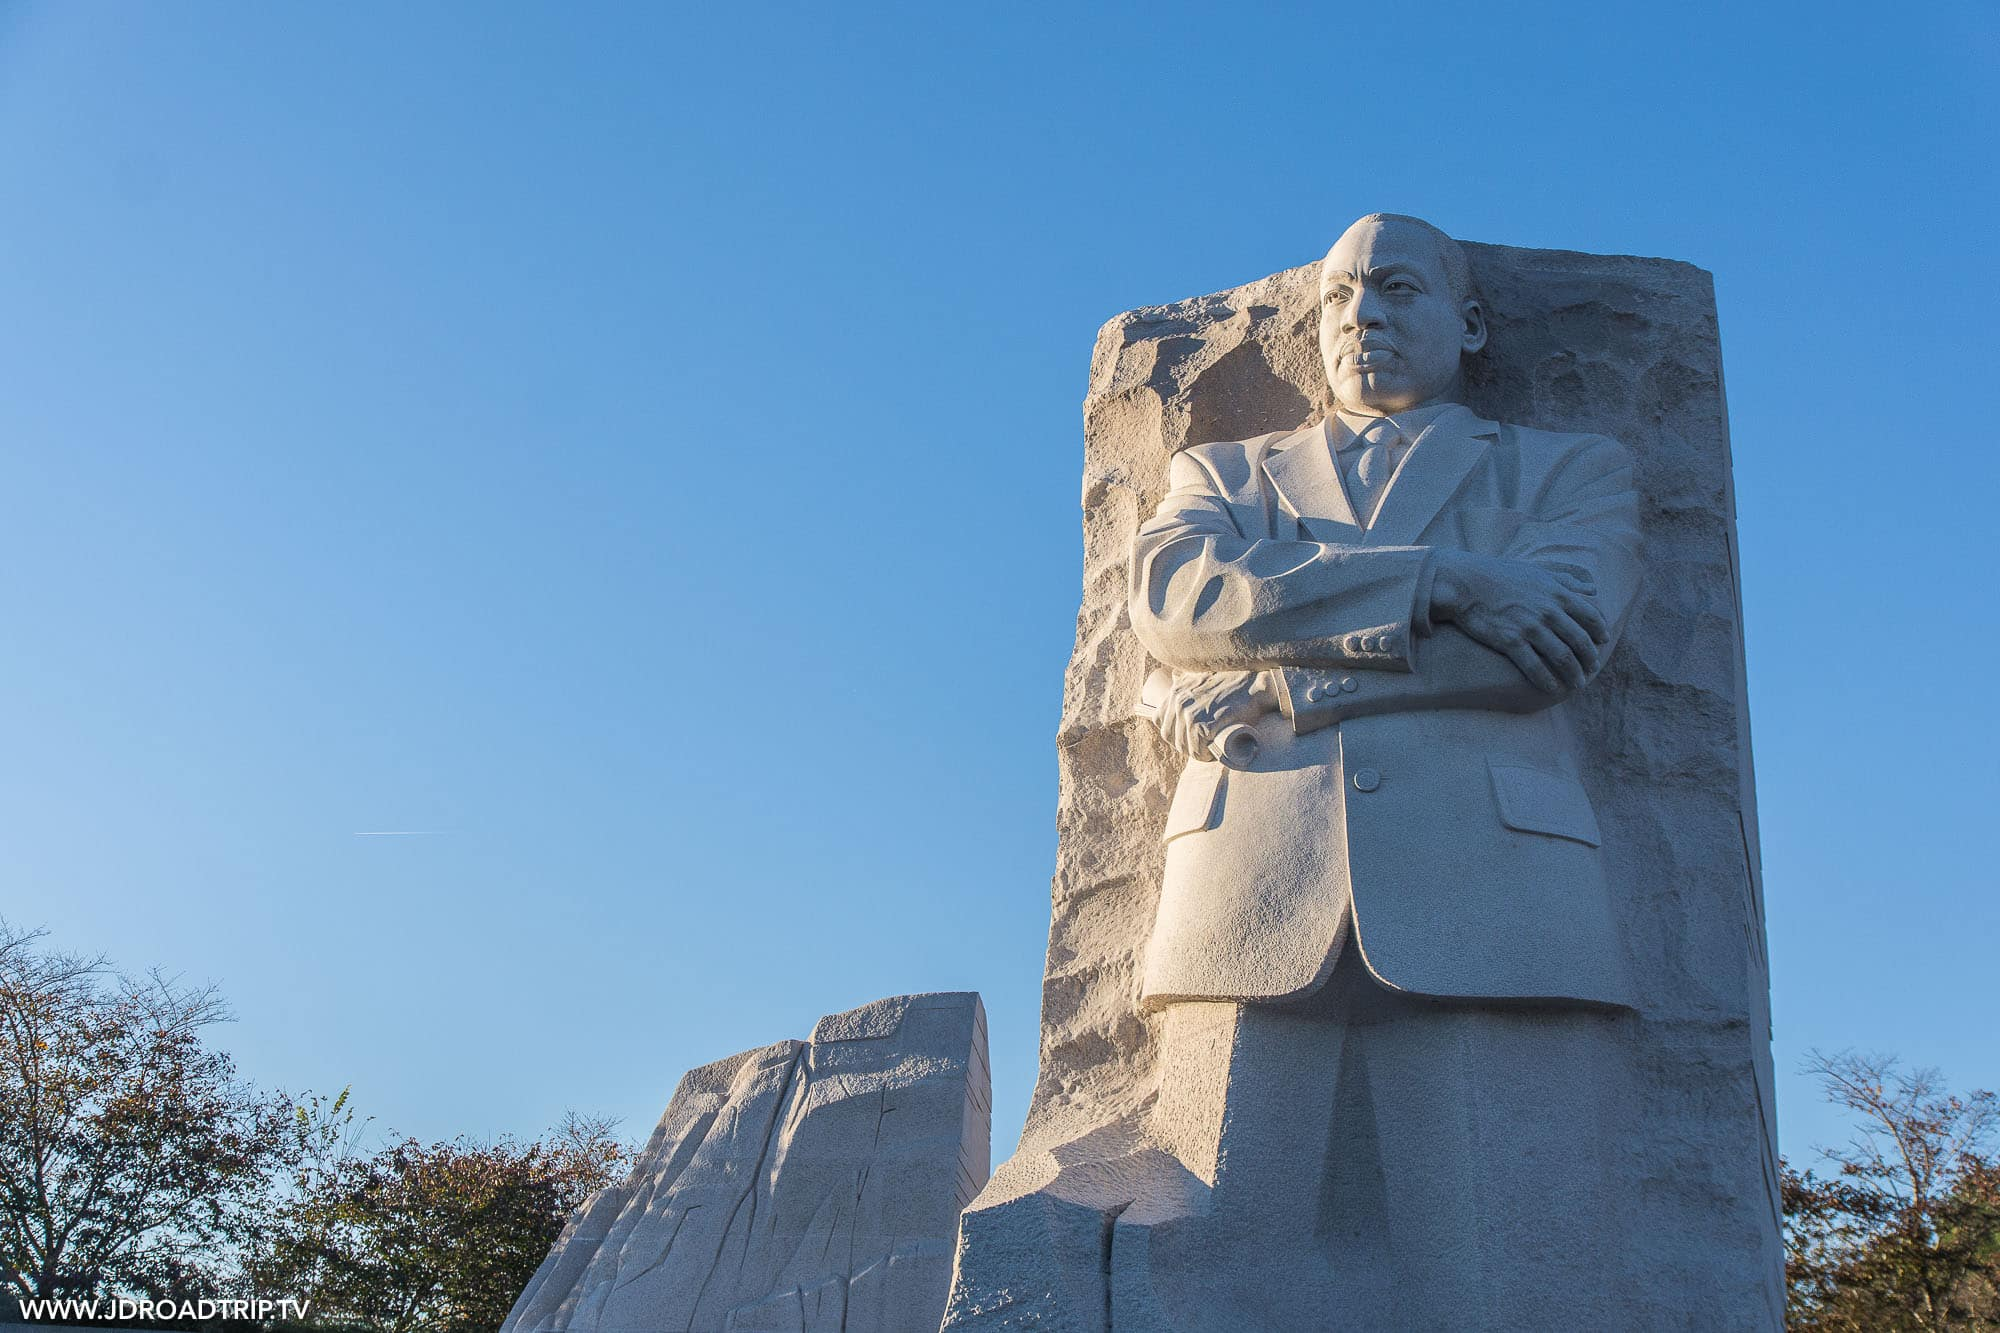 visiter Washington DC en 5 jours - Mémorial Martin Luther King